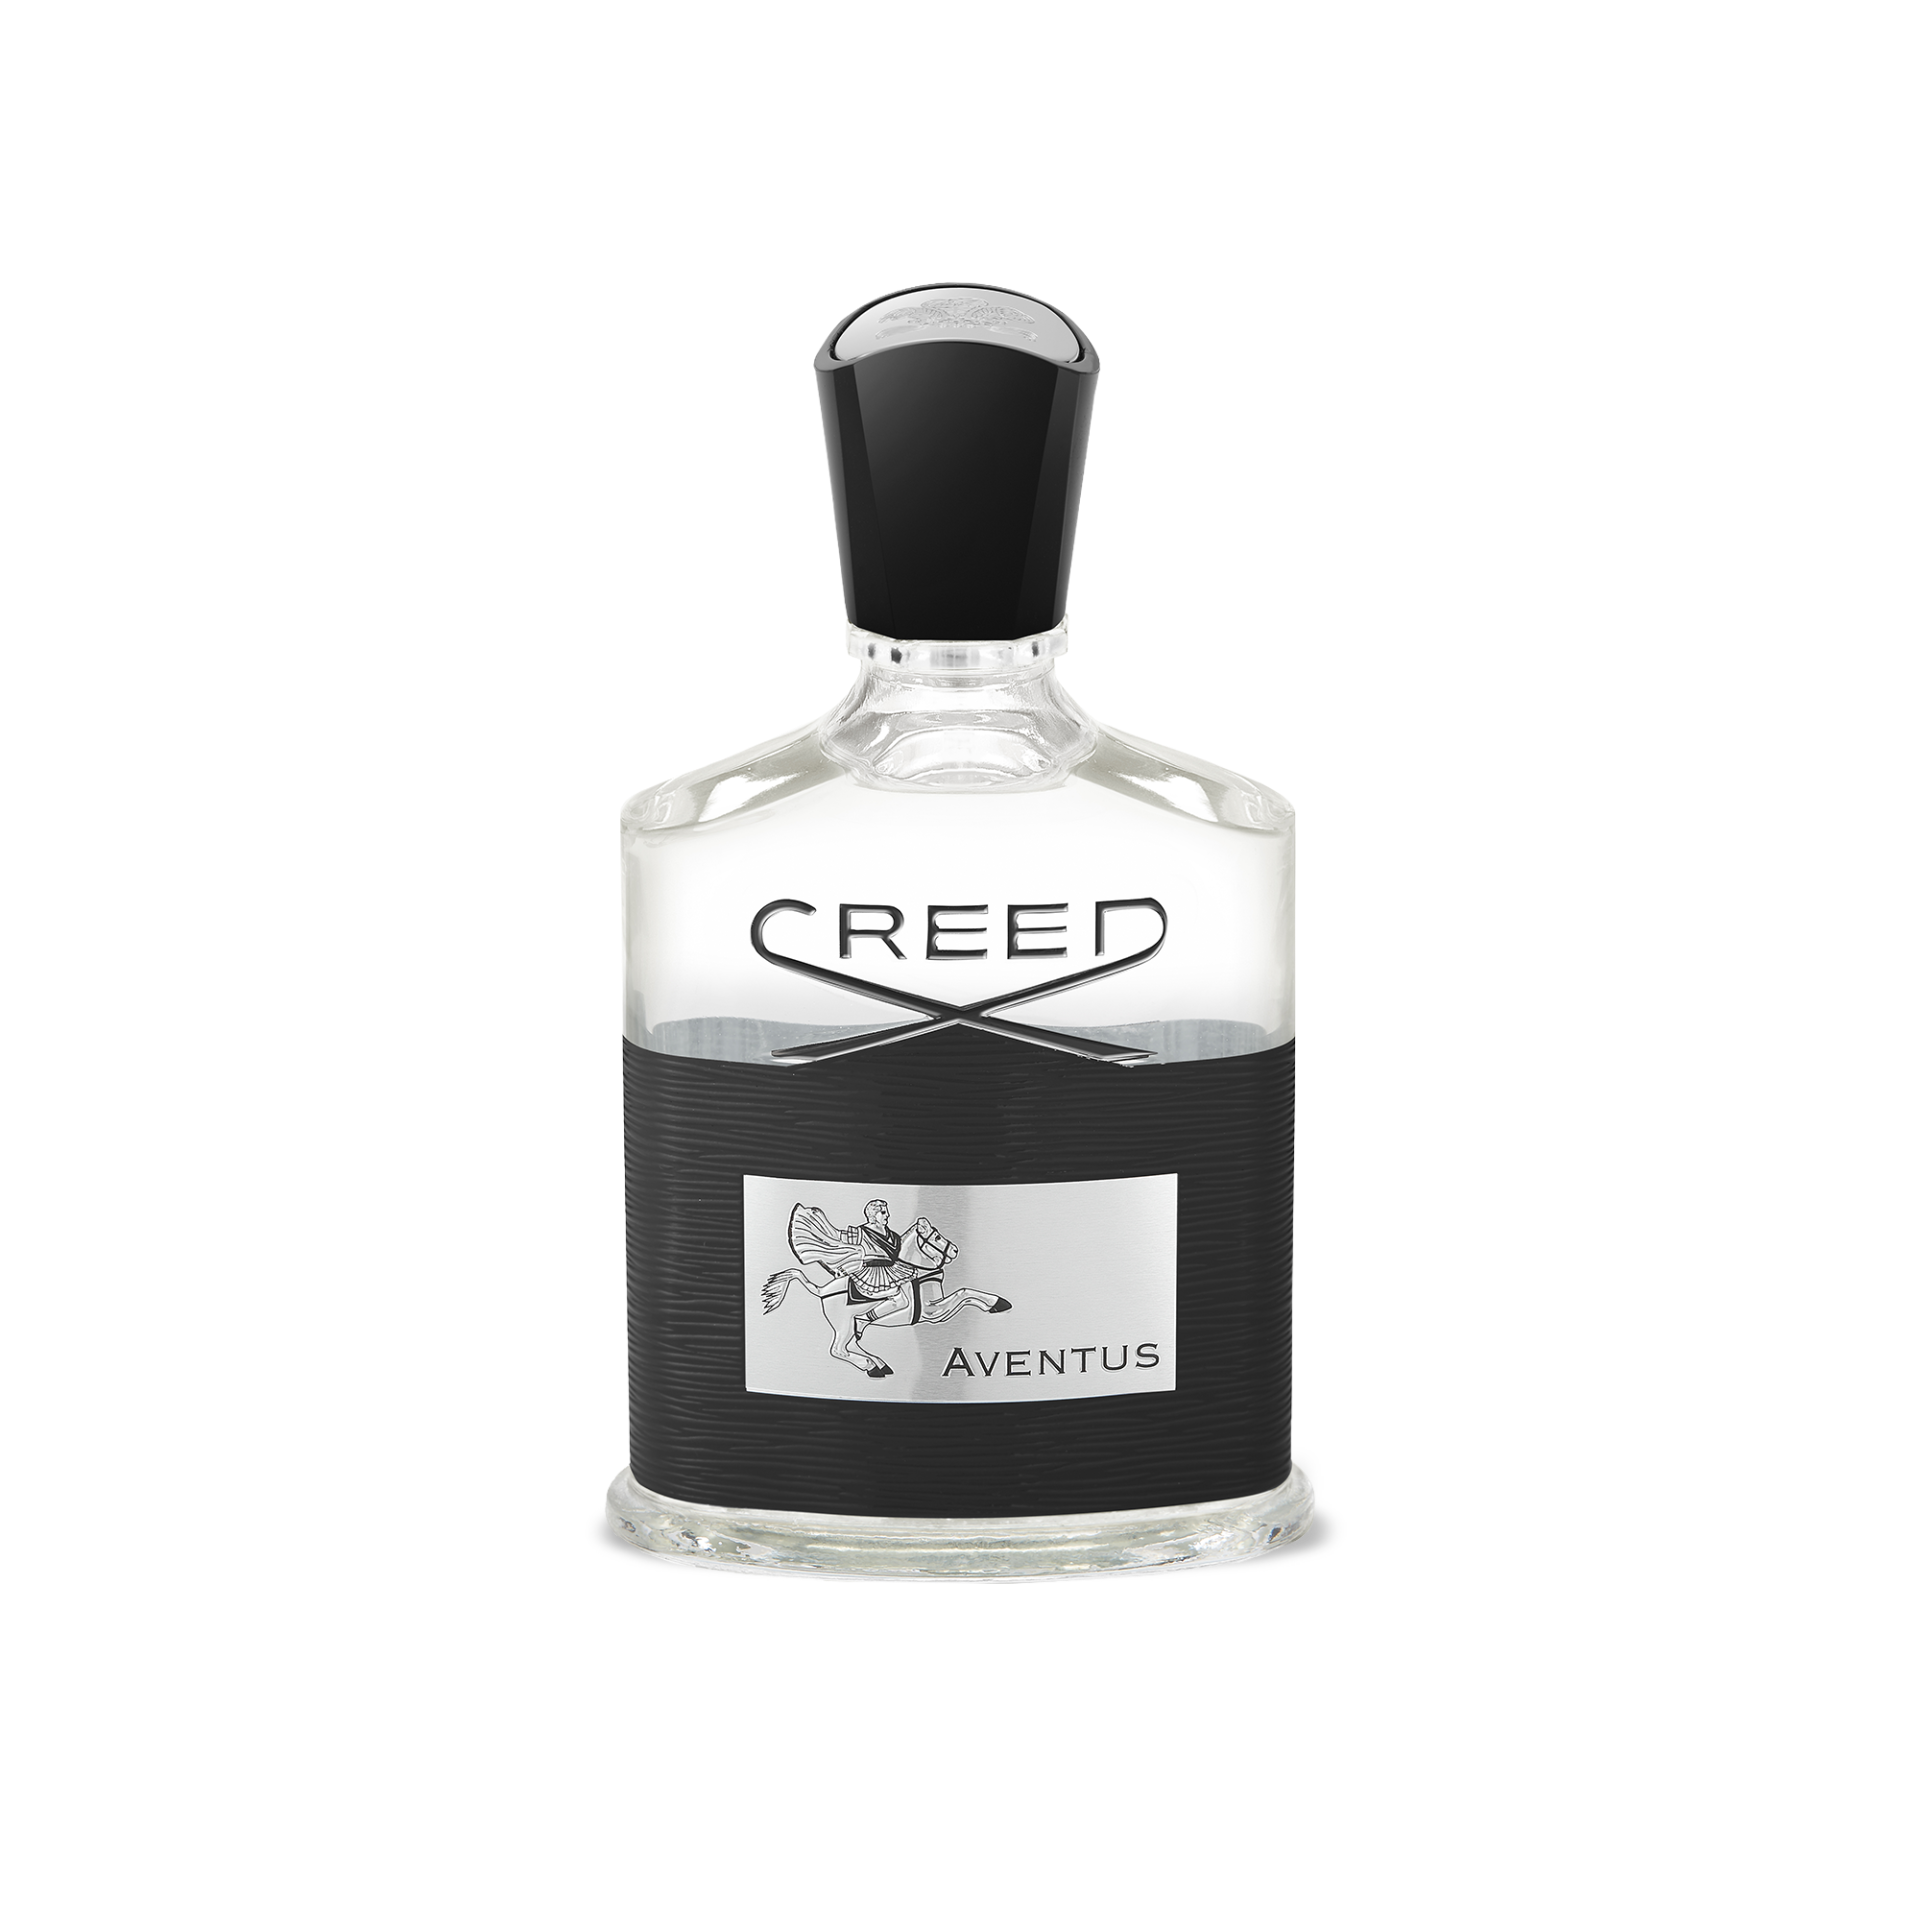 1628a8888476 Creed Aventus - Men's Fragrance Eau de Parfum | CreedBoutique.com Official  Site